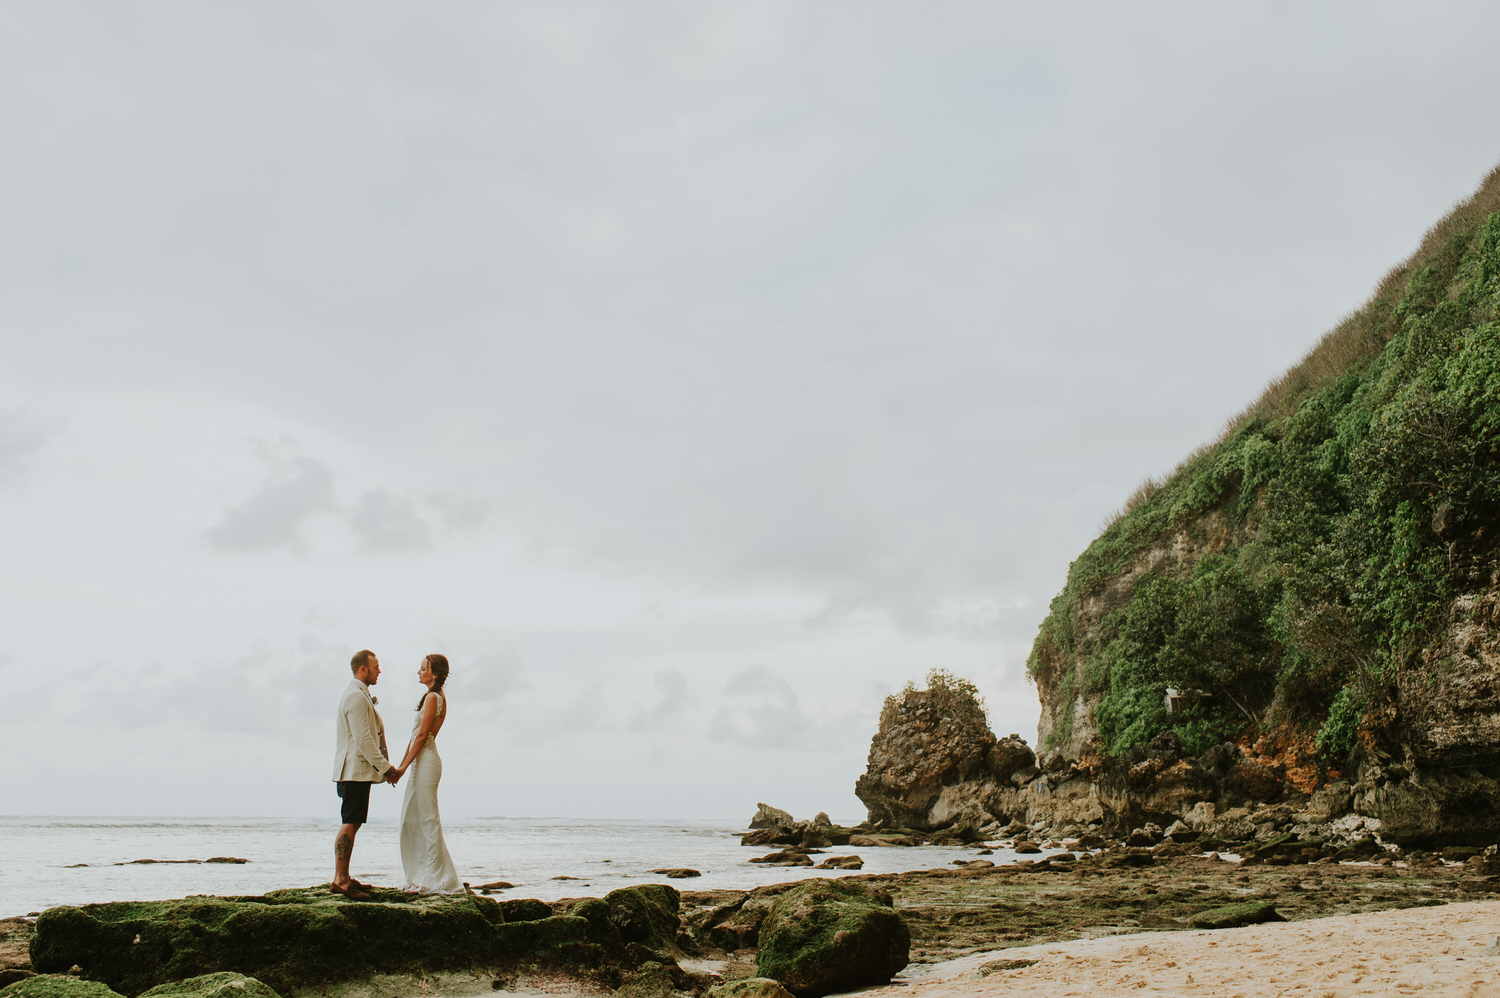 bali wedding destination - the ungasan wedding - bali wedding photographer - diktatphotography - aimee + blake wedding - 104